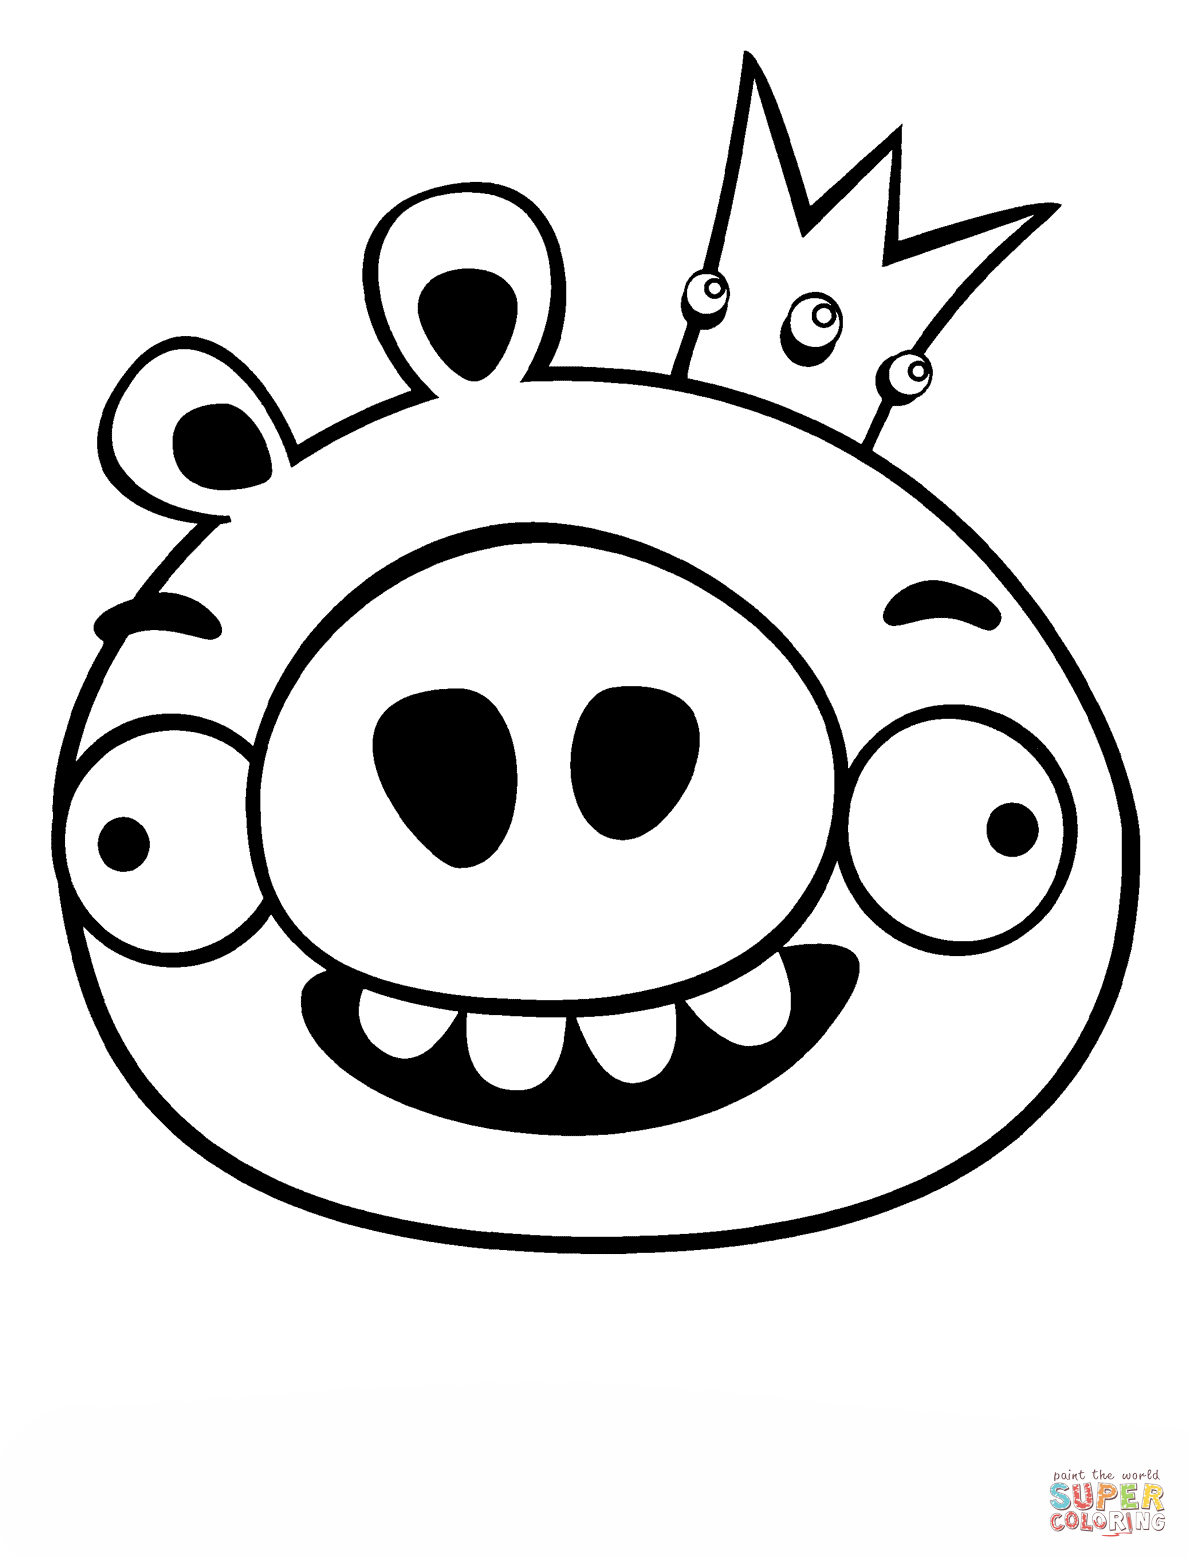 1188x1558 Pig In The Mud Coloring Pages Online Animals Teacup Page Animal